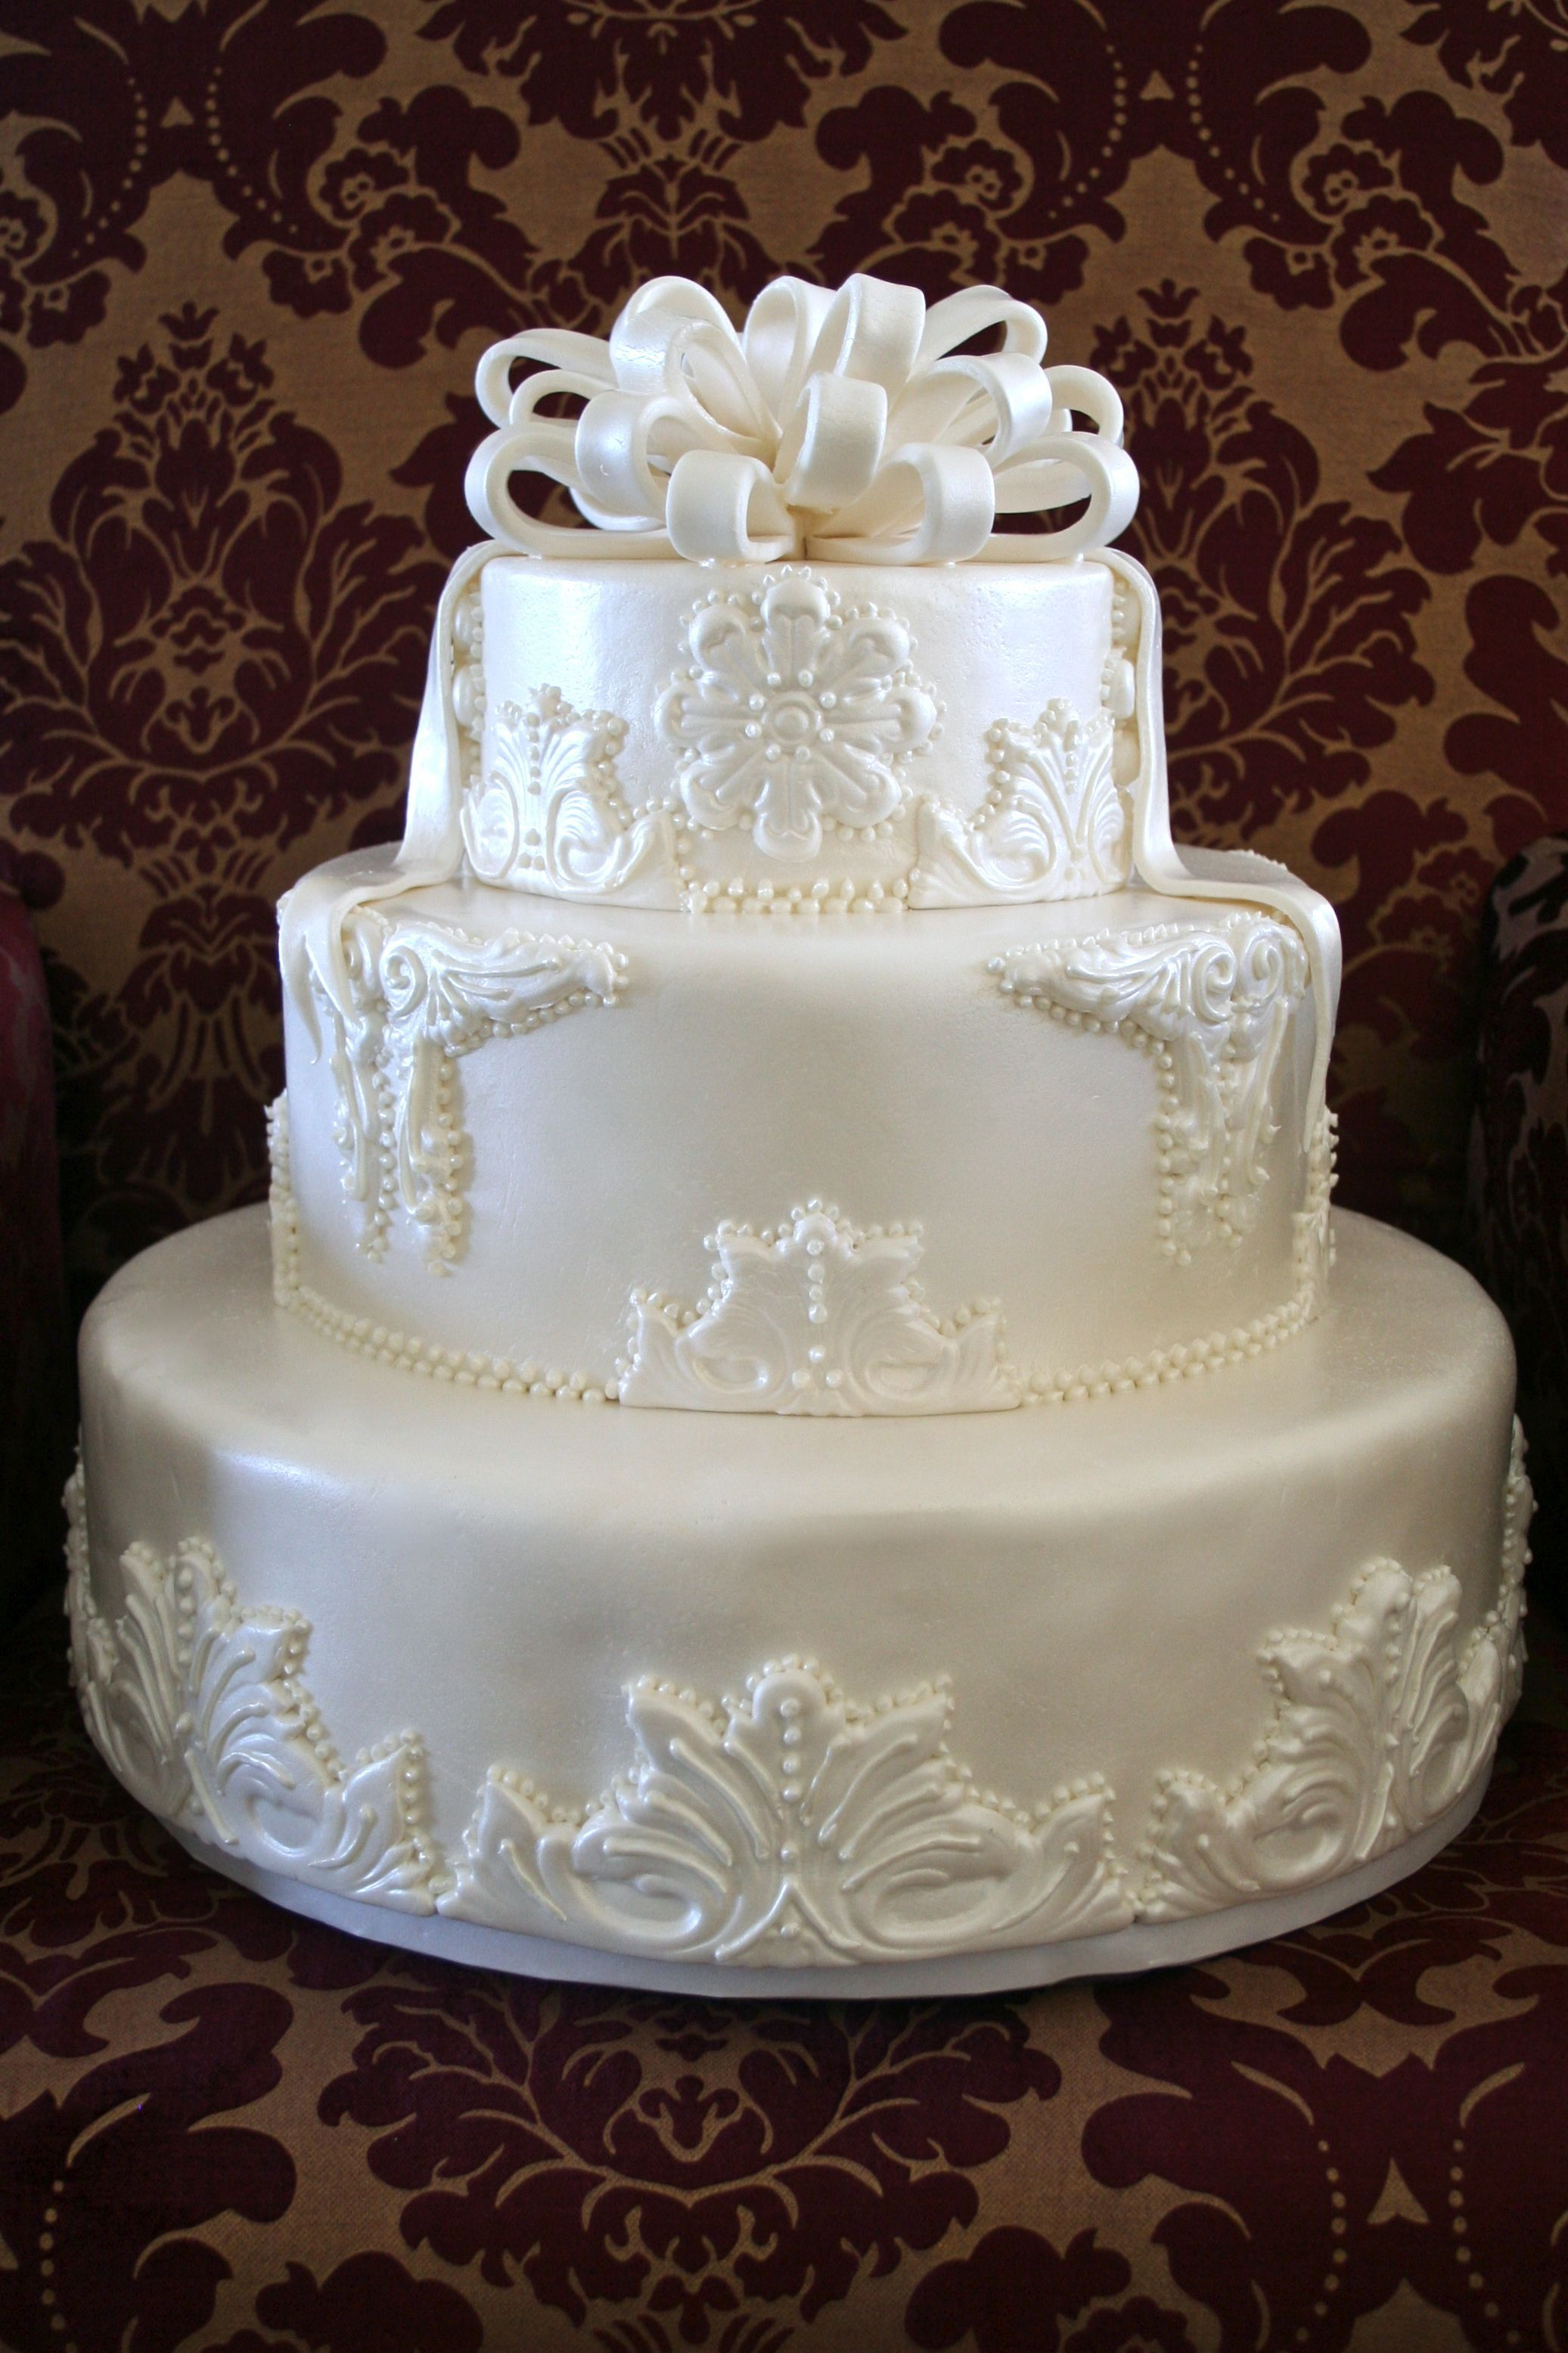 Cakes, white, cake, Wedding, Fondant, Tiered, Applique, Bow, Pearl, Piping, Shimmer, Bennys bakery